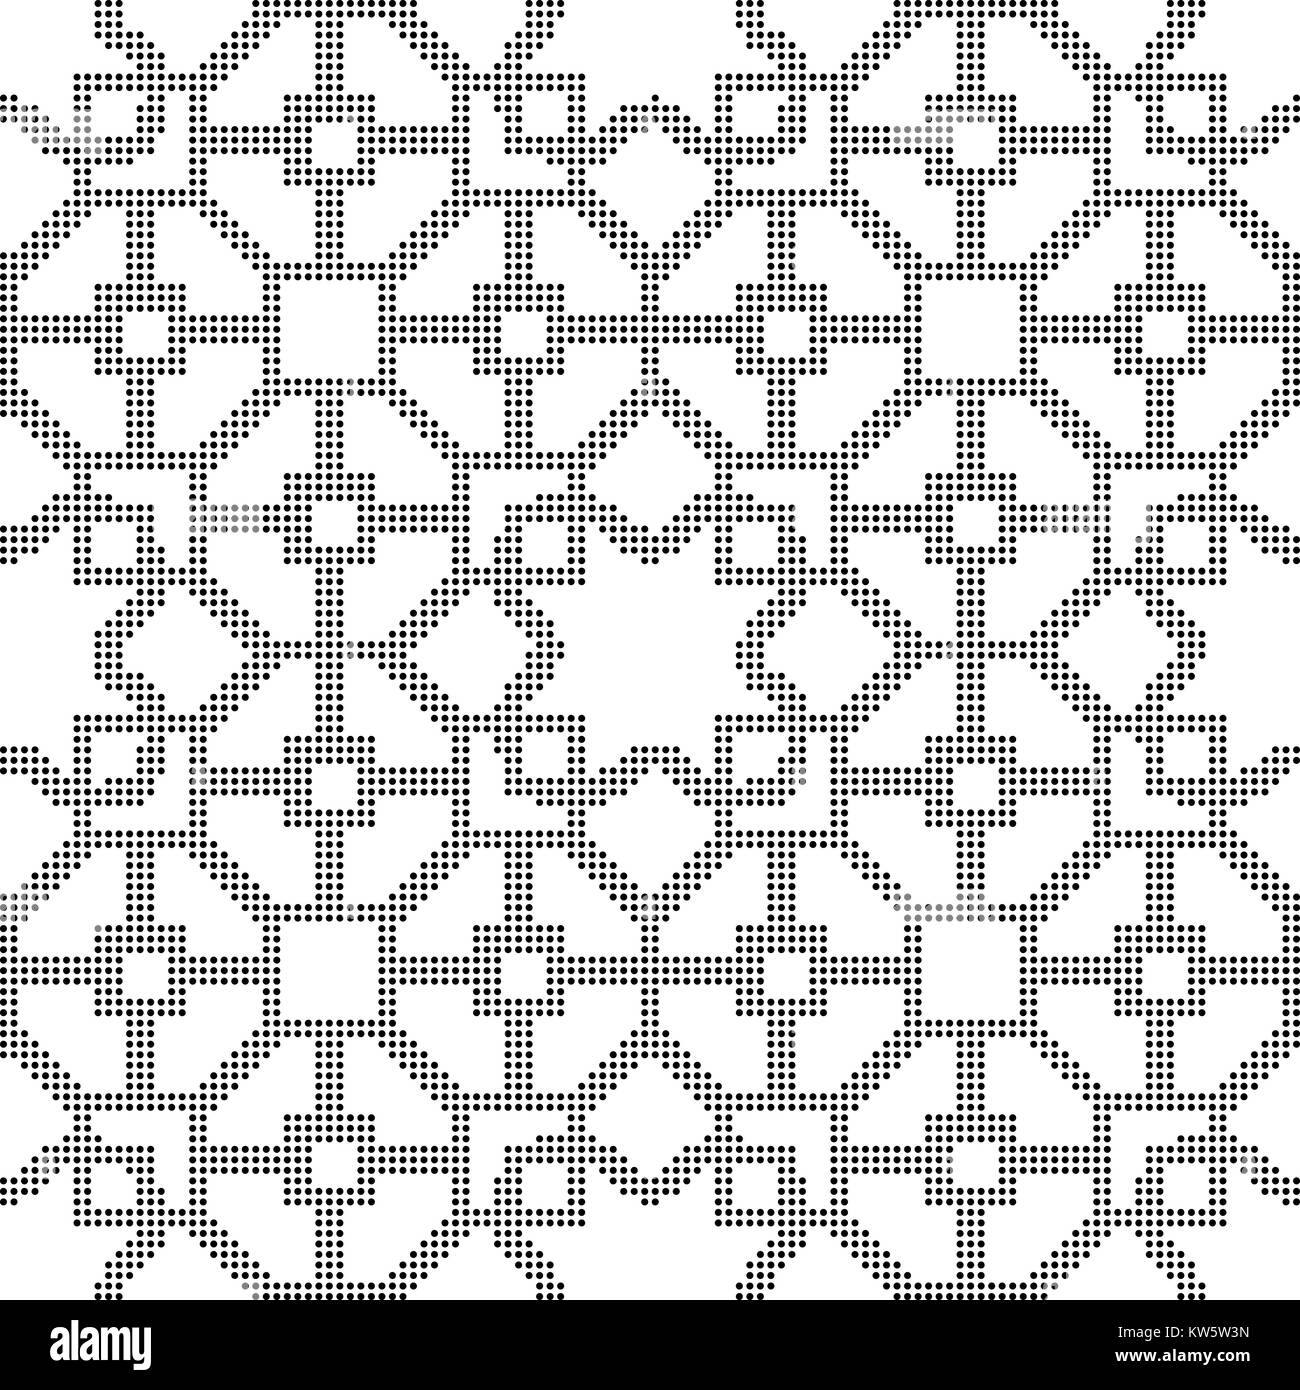 Square Lattice Cut Out Stock Images & Pictures - Alamy